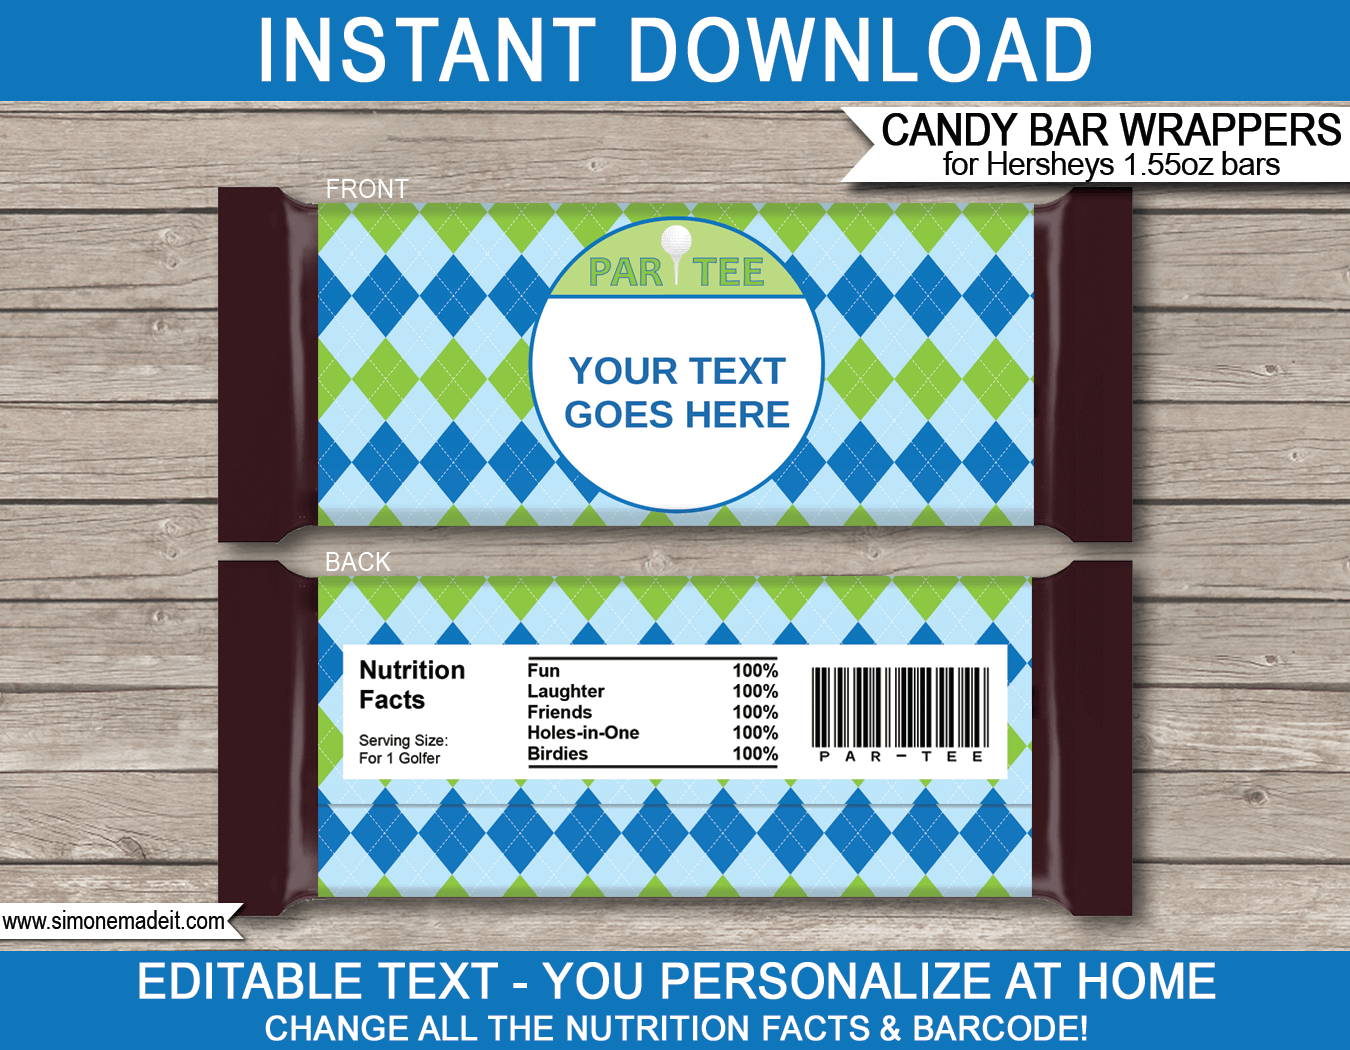 custom candy wrappers templates golf hershey candy bar wrappers personalized candy bars